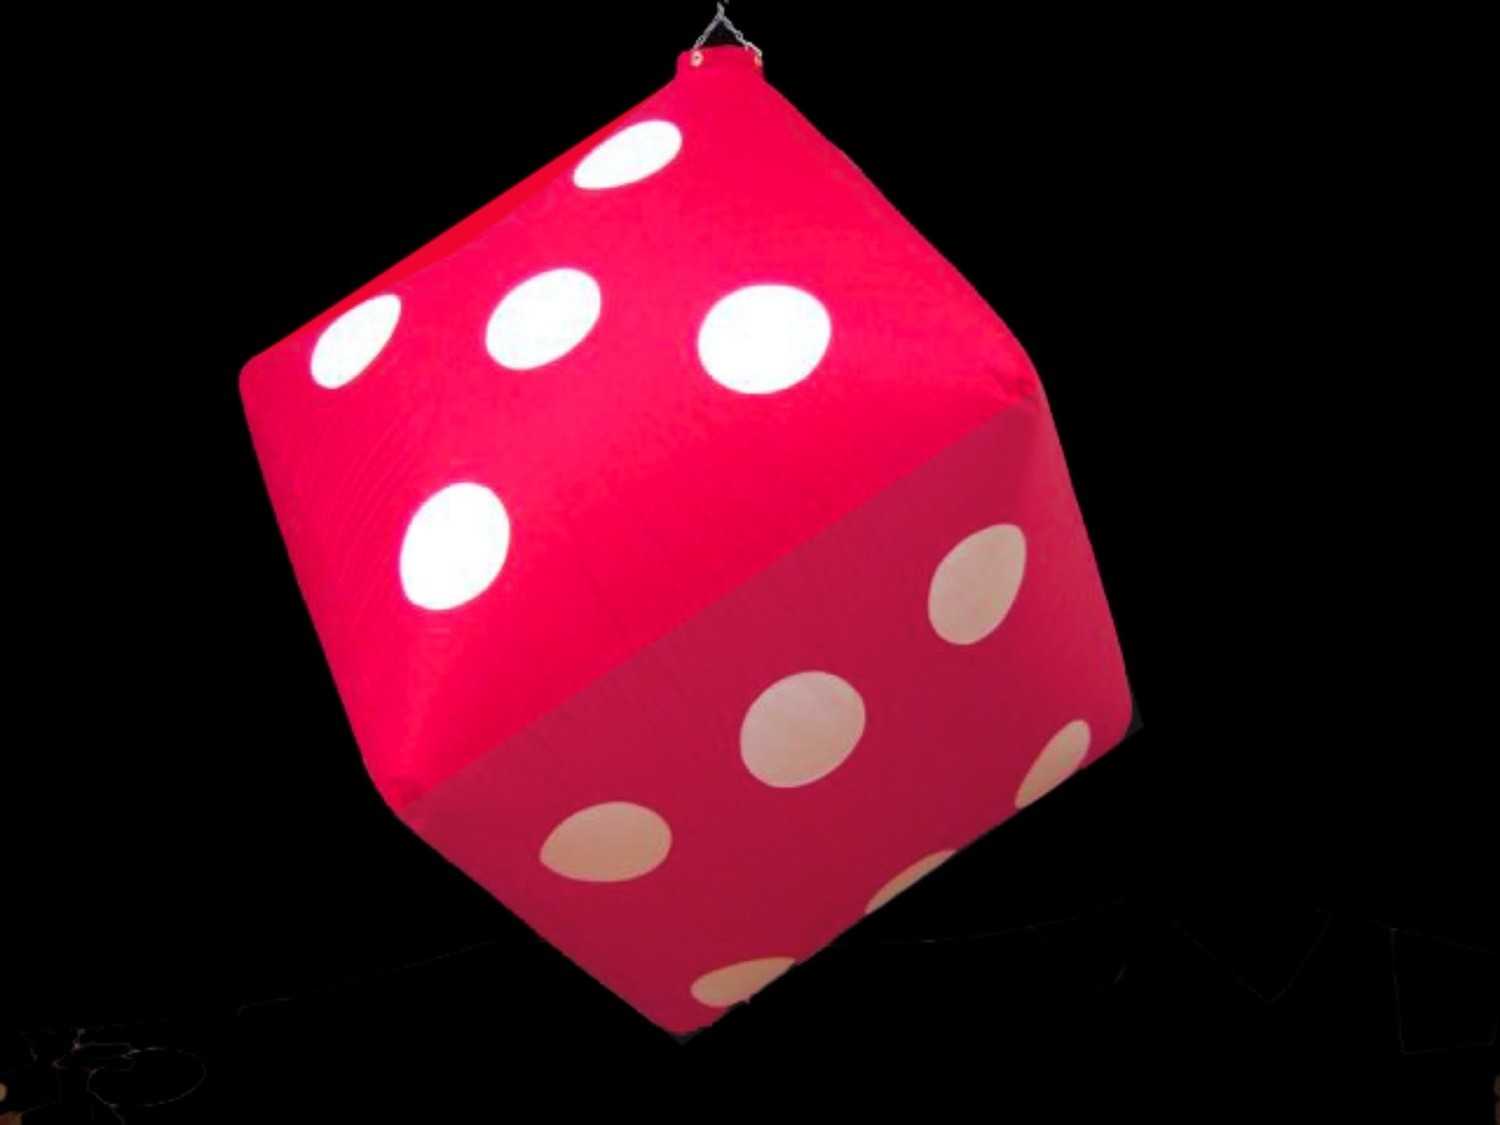 Hanging Inflatable Dice 3ft/91cm x 3ft/91cm